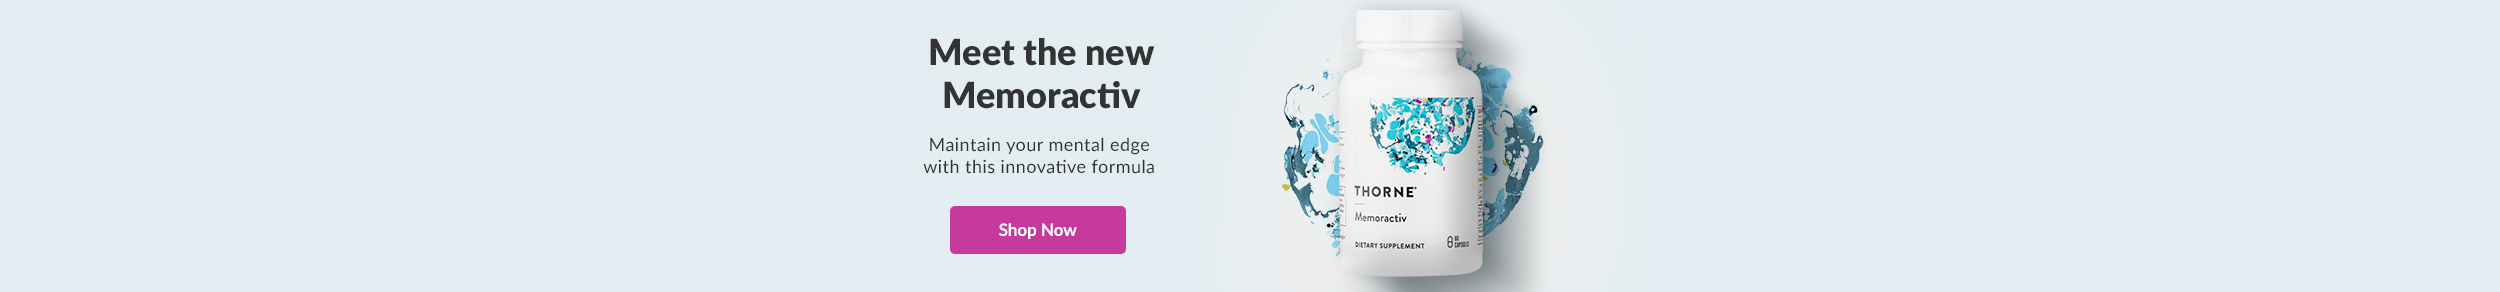 Meet the new Memoractiv - Maintain your mental edge with this innovative formula